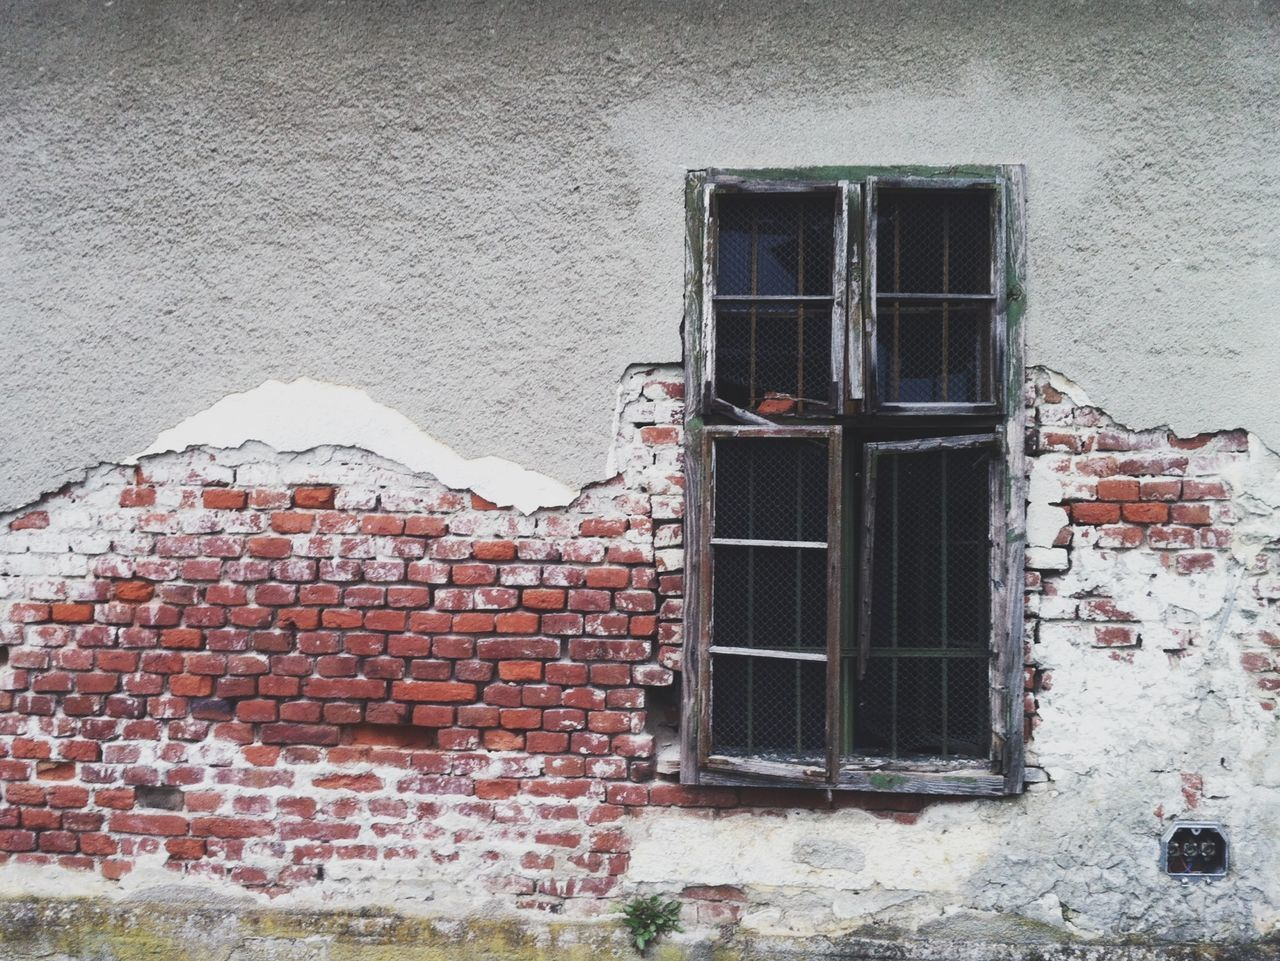 Close-up of brick wall with window